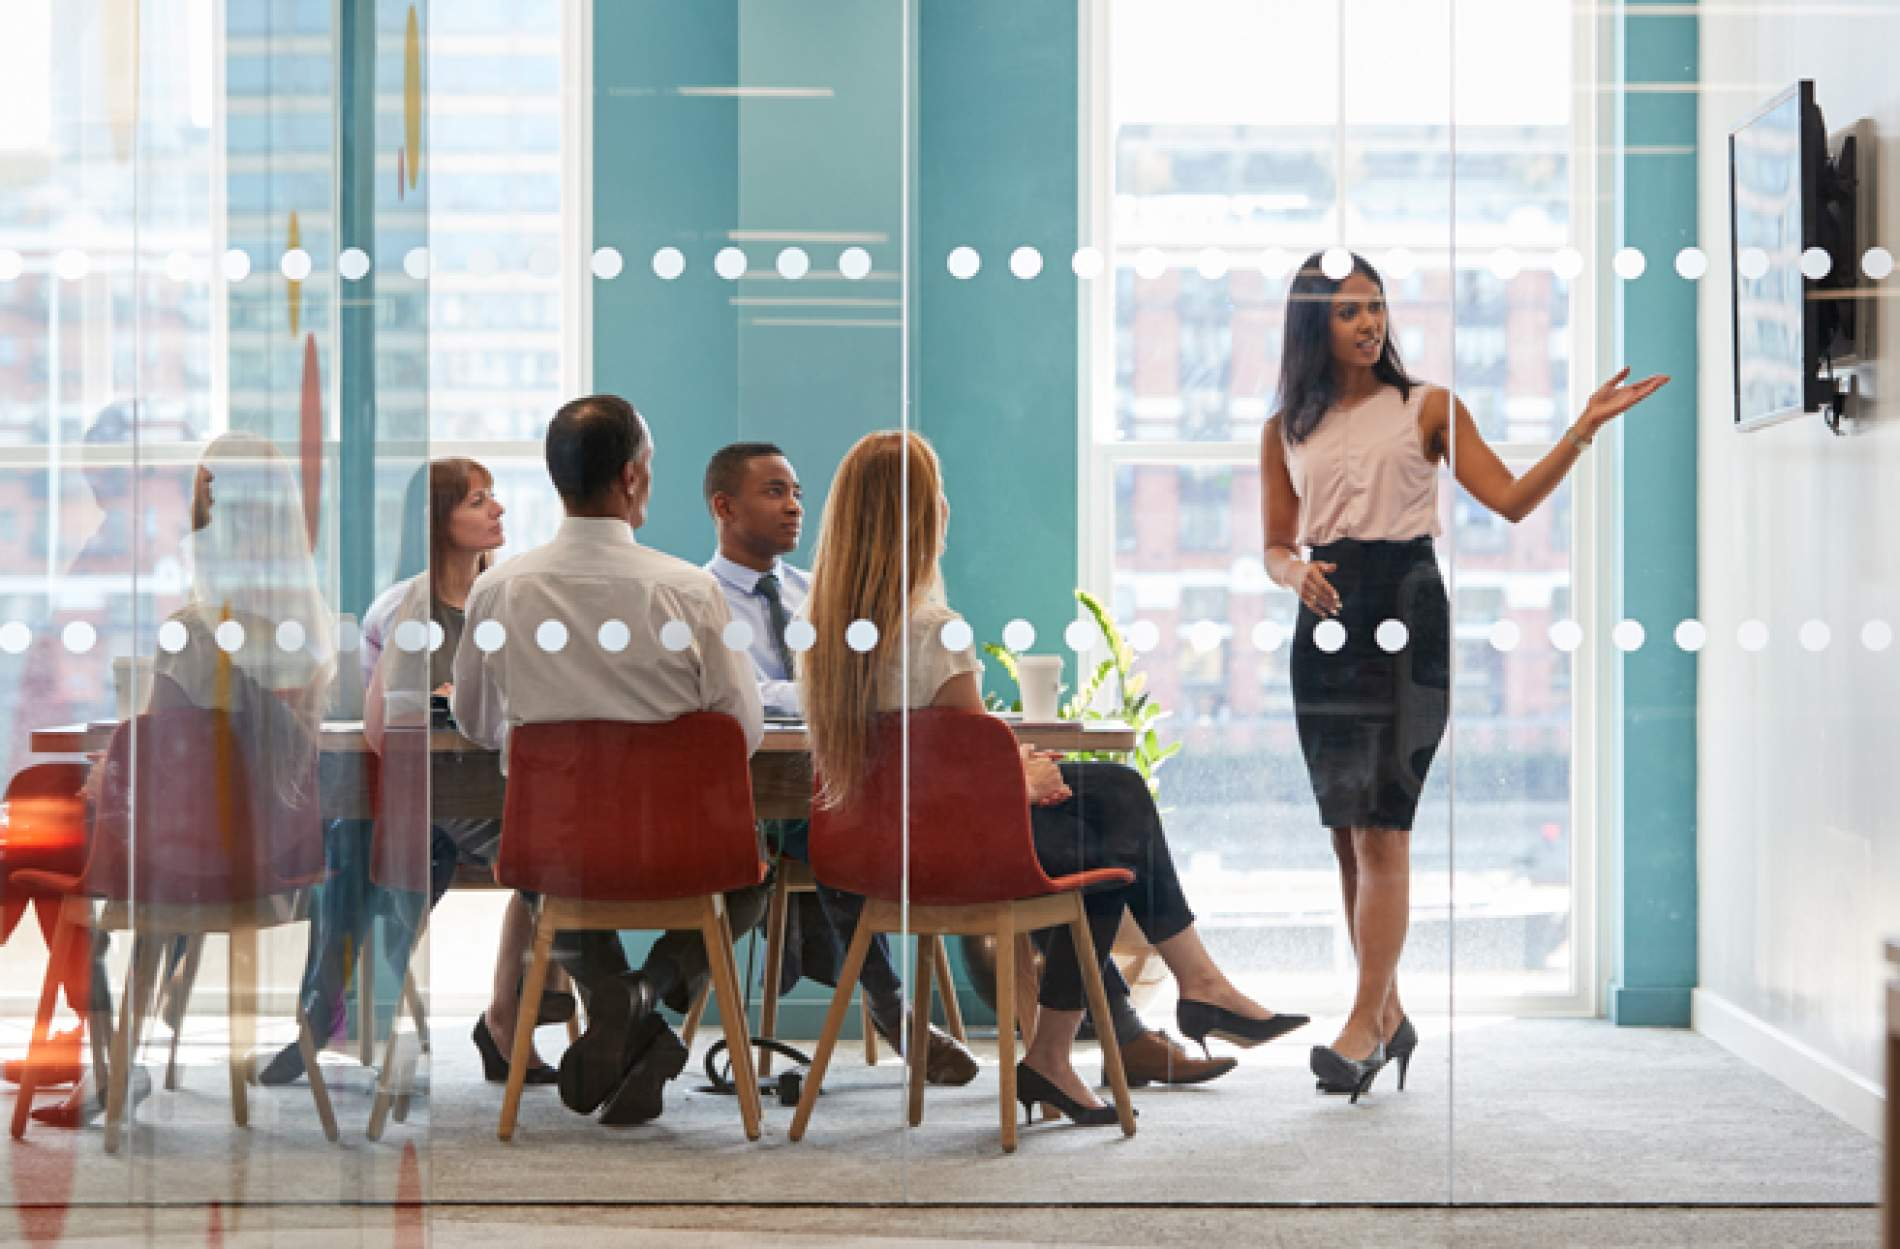 Woman giving a presentation in a conference room full of people